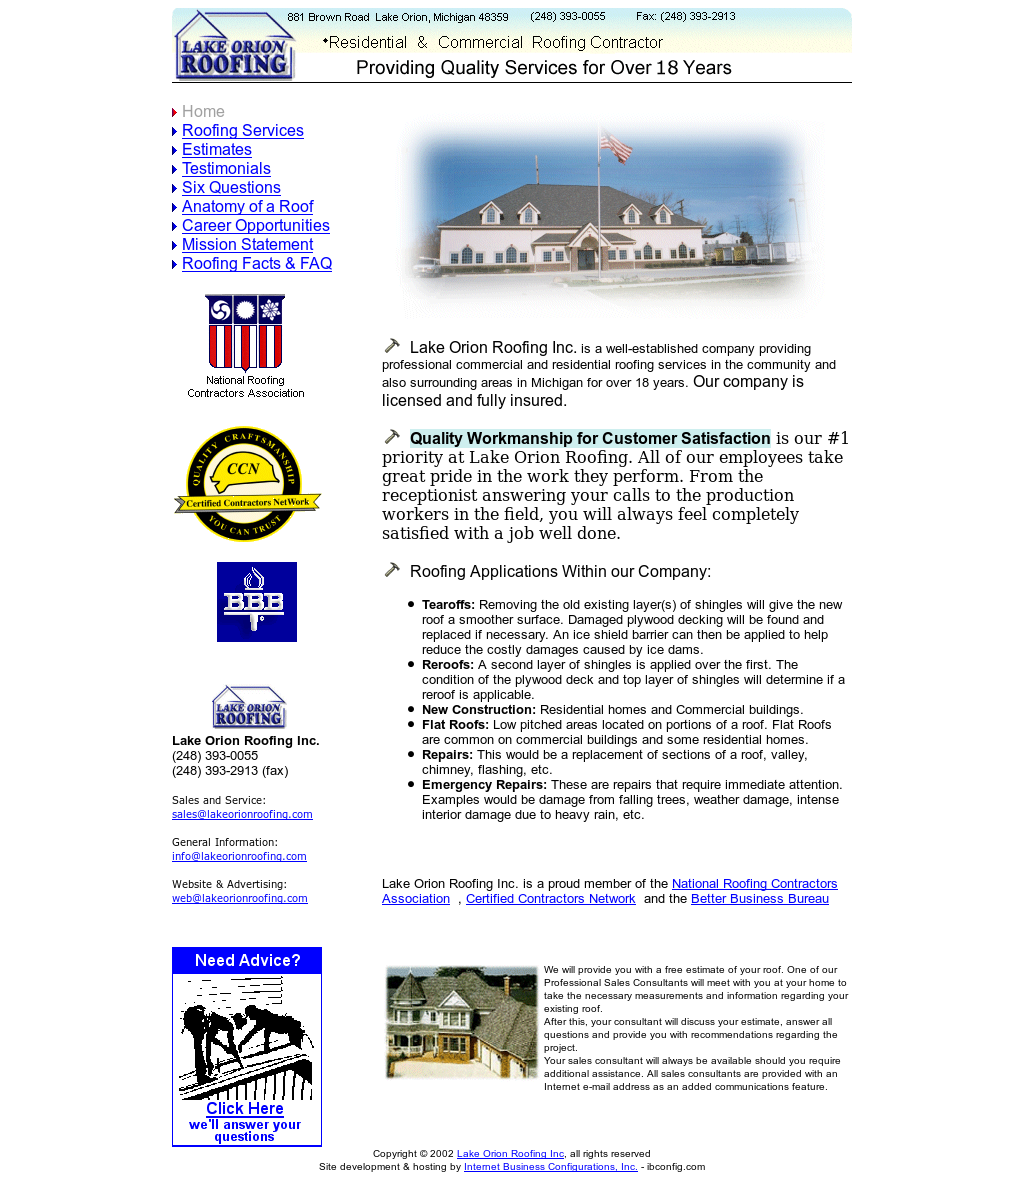 Lake Orion Roofing Competitors, Revenue and Employees - Owler ...